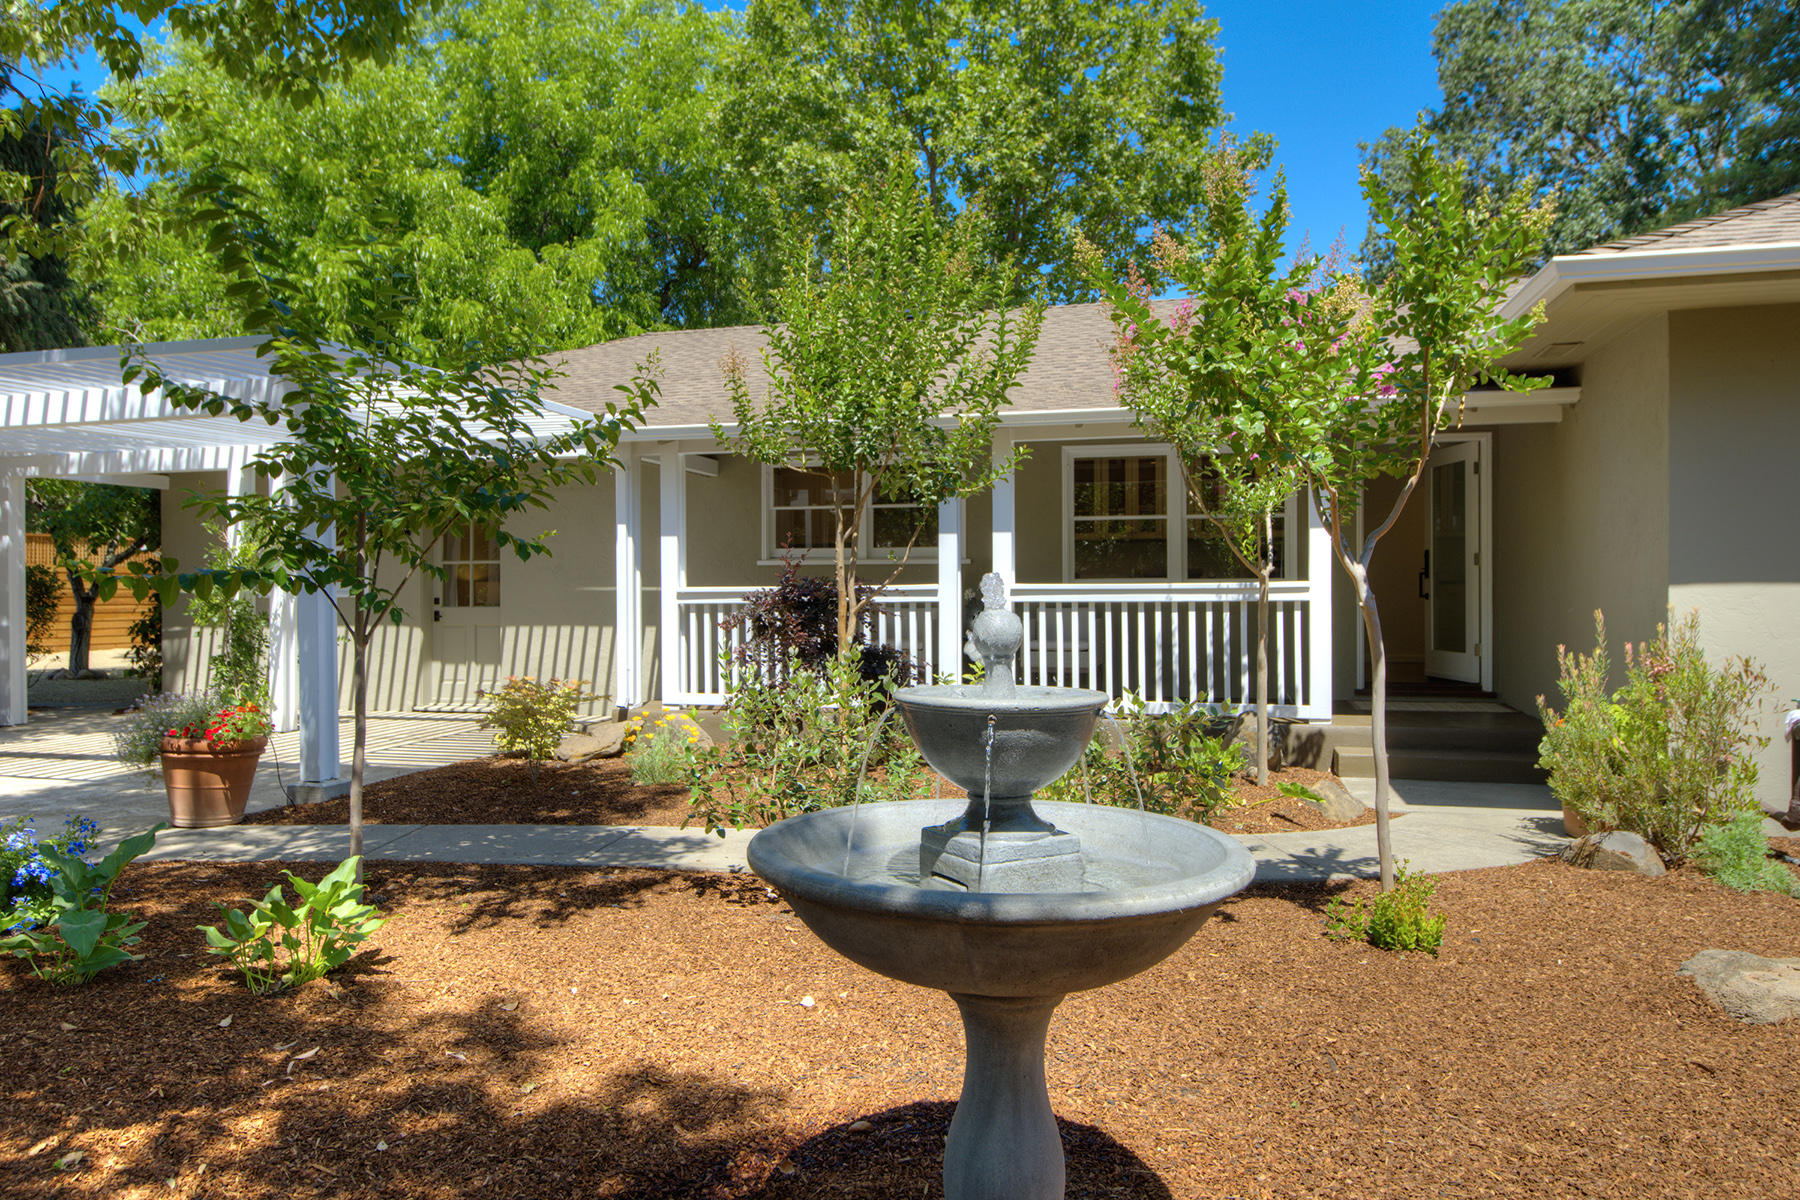 Single Family Home for Sale at 1434 Grayson Ave, St. Helena, CA 94574 1434 Grayson Ave St. Helena, California, 94574 United States